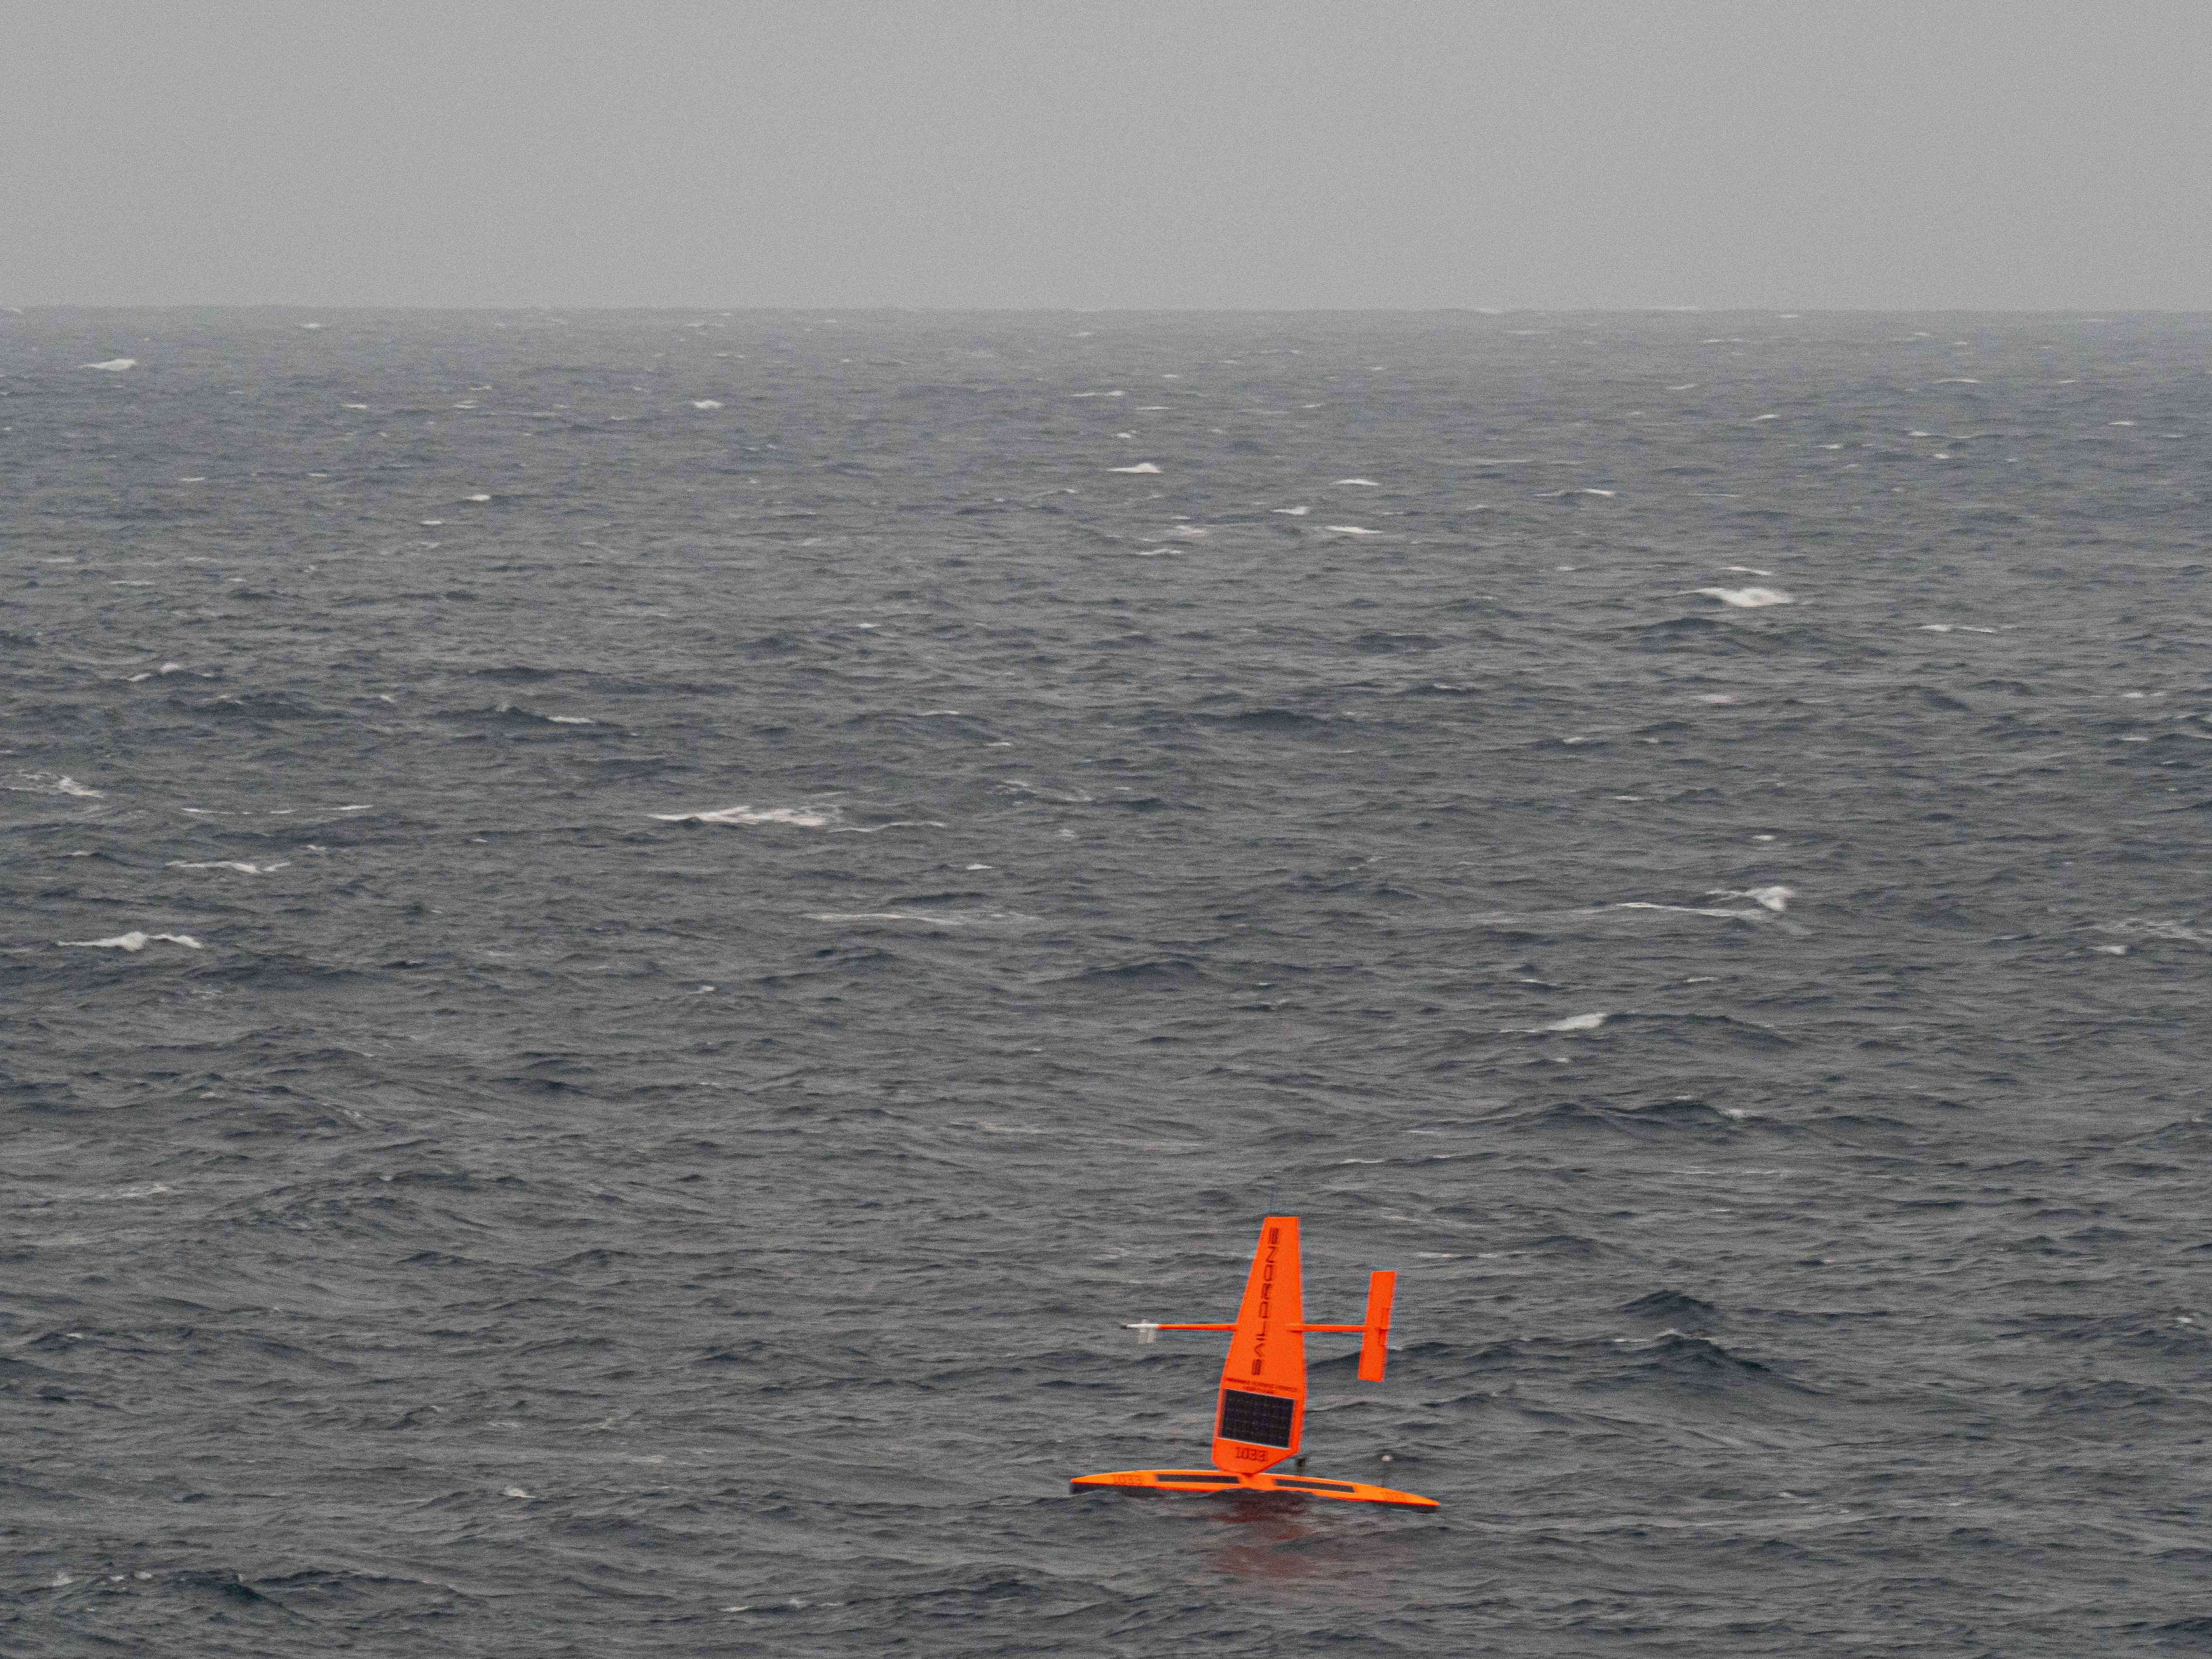 A saildrone observed at sea in the Arctic during the 2019 NOAA Arctic missions